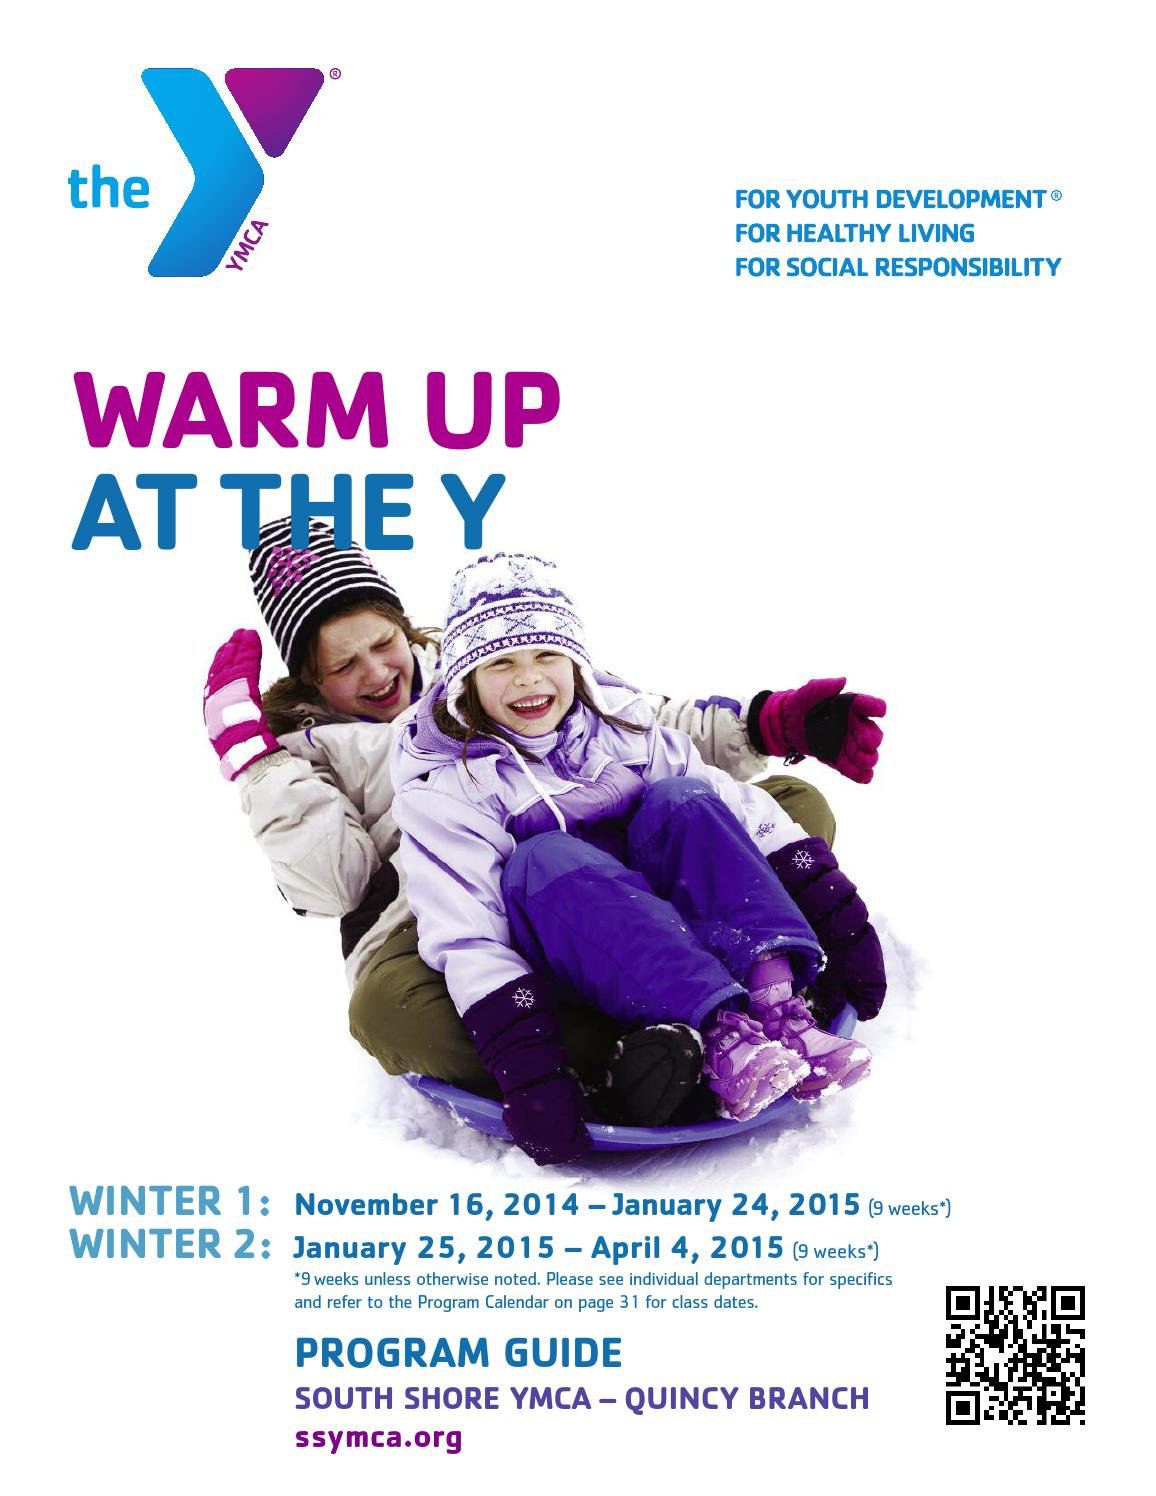 quincy ymca winter 2015 program guide by south shore ymca issuu